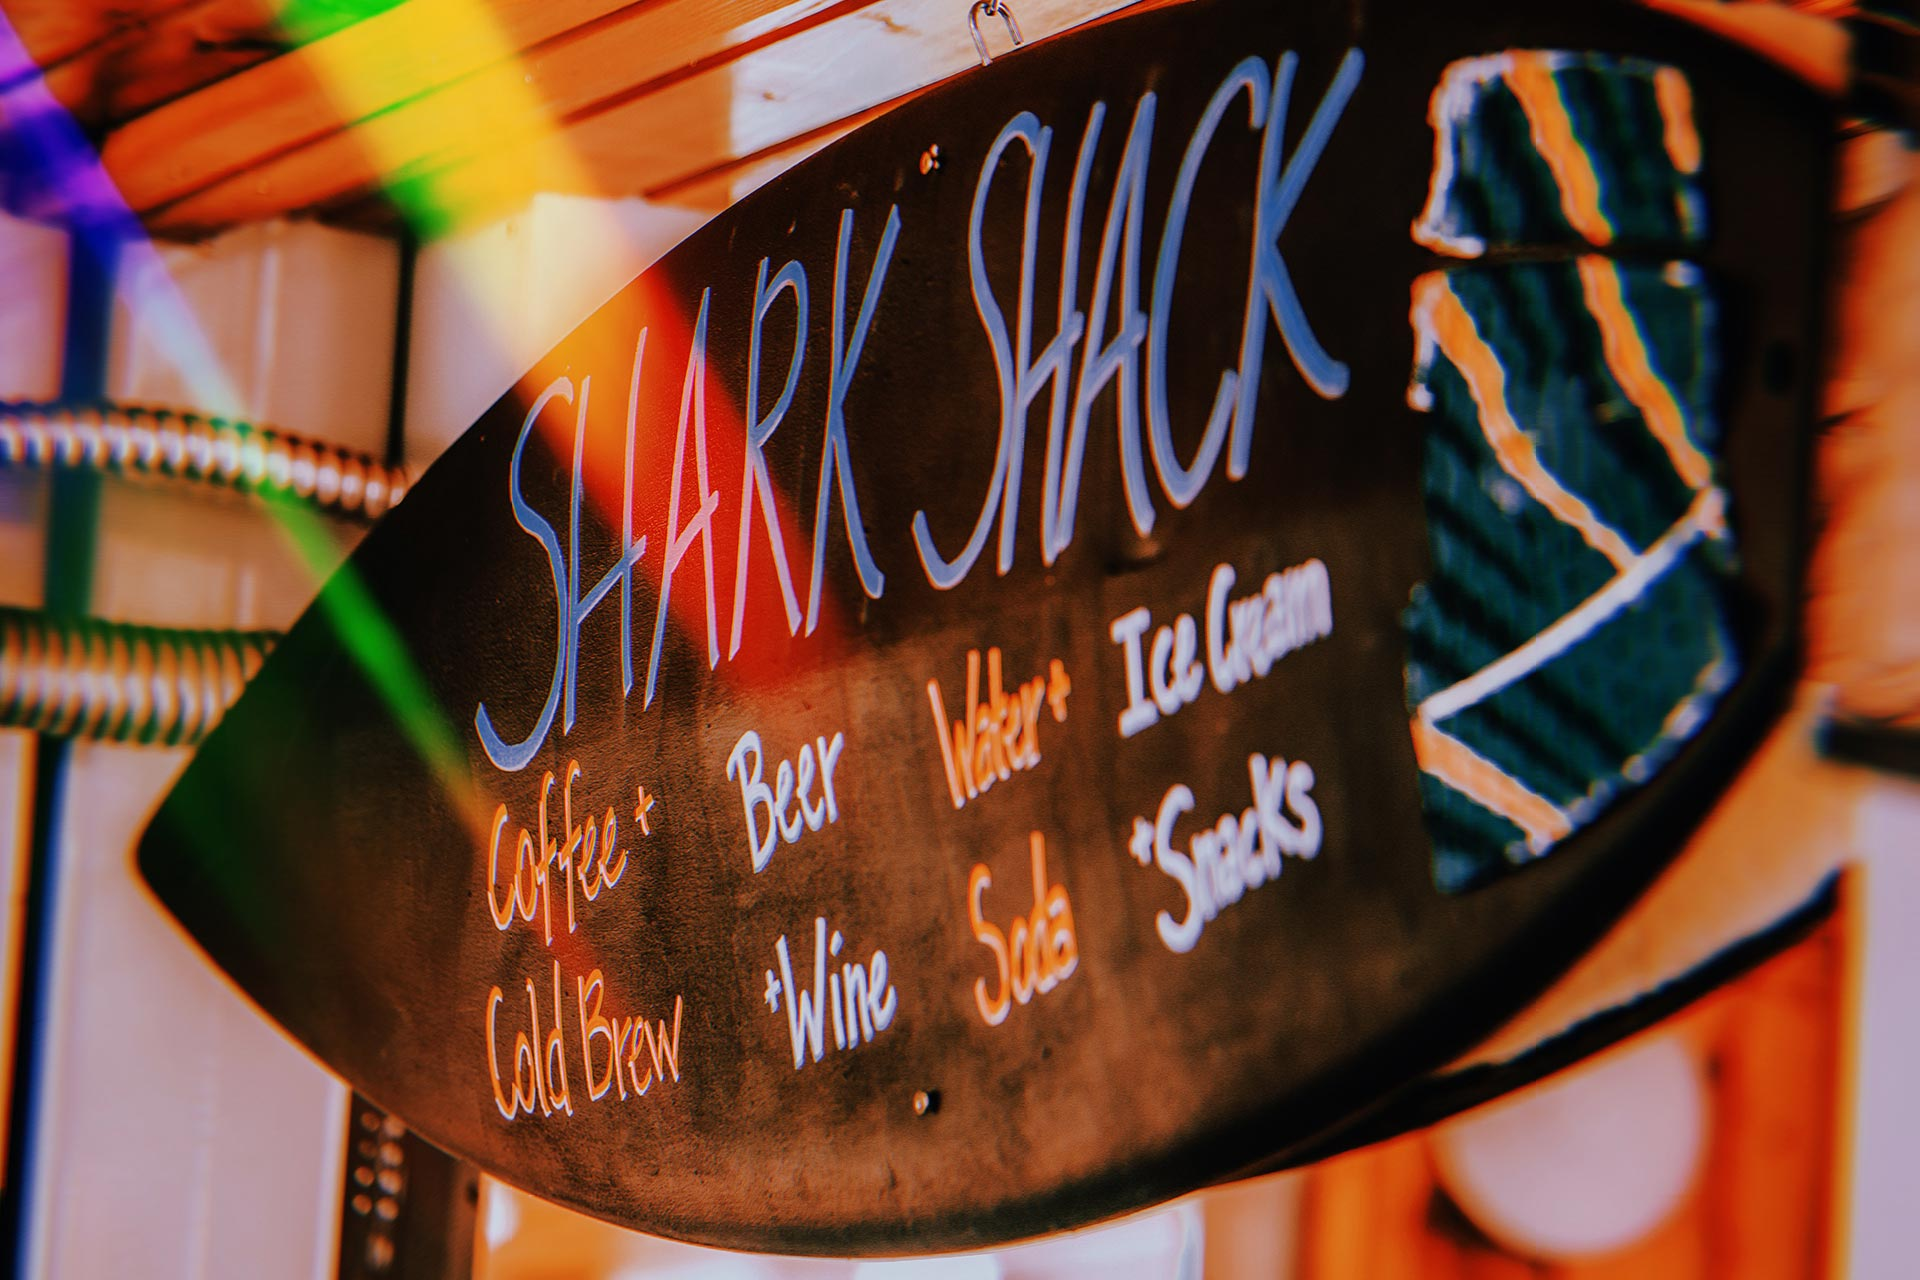 Image of Shark Shack 843 Menu